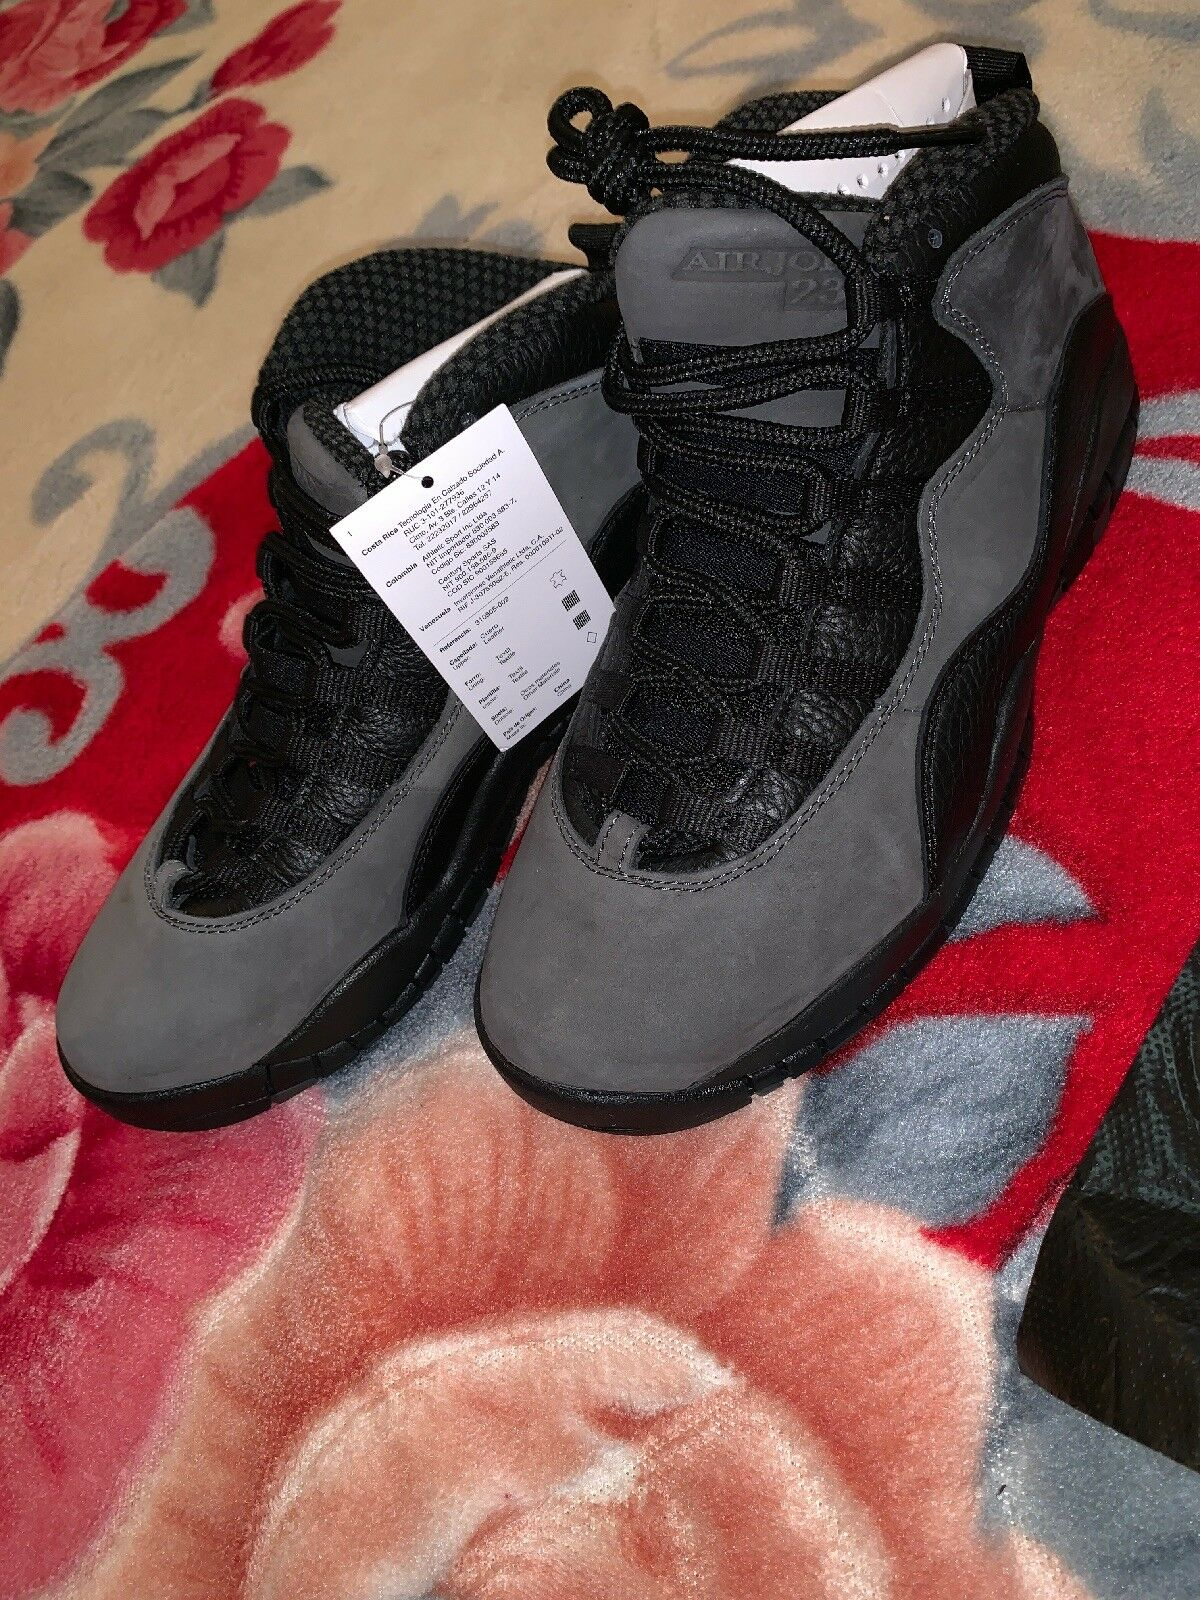 Air Jordan 10 Retro 'Shadow 2018' 310805 002 Size 9.5